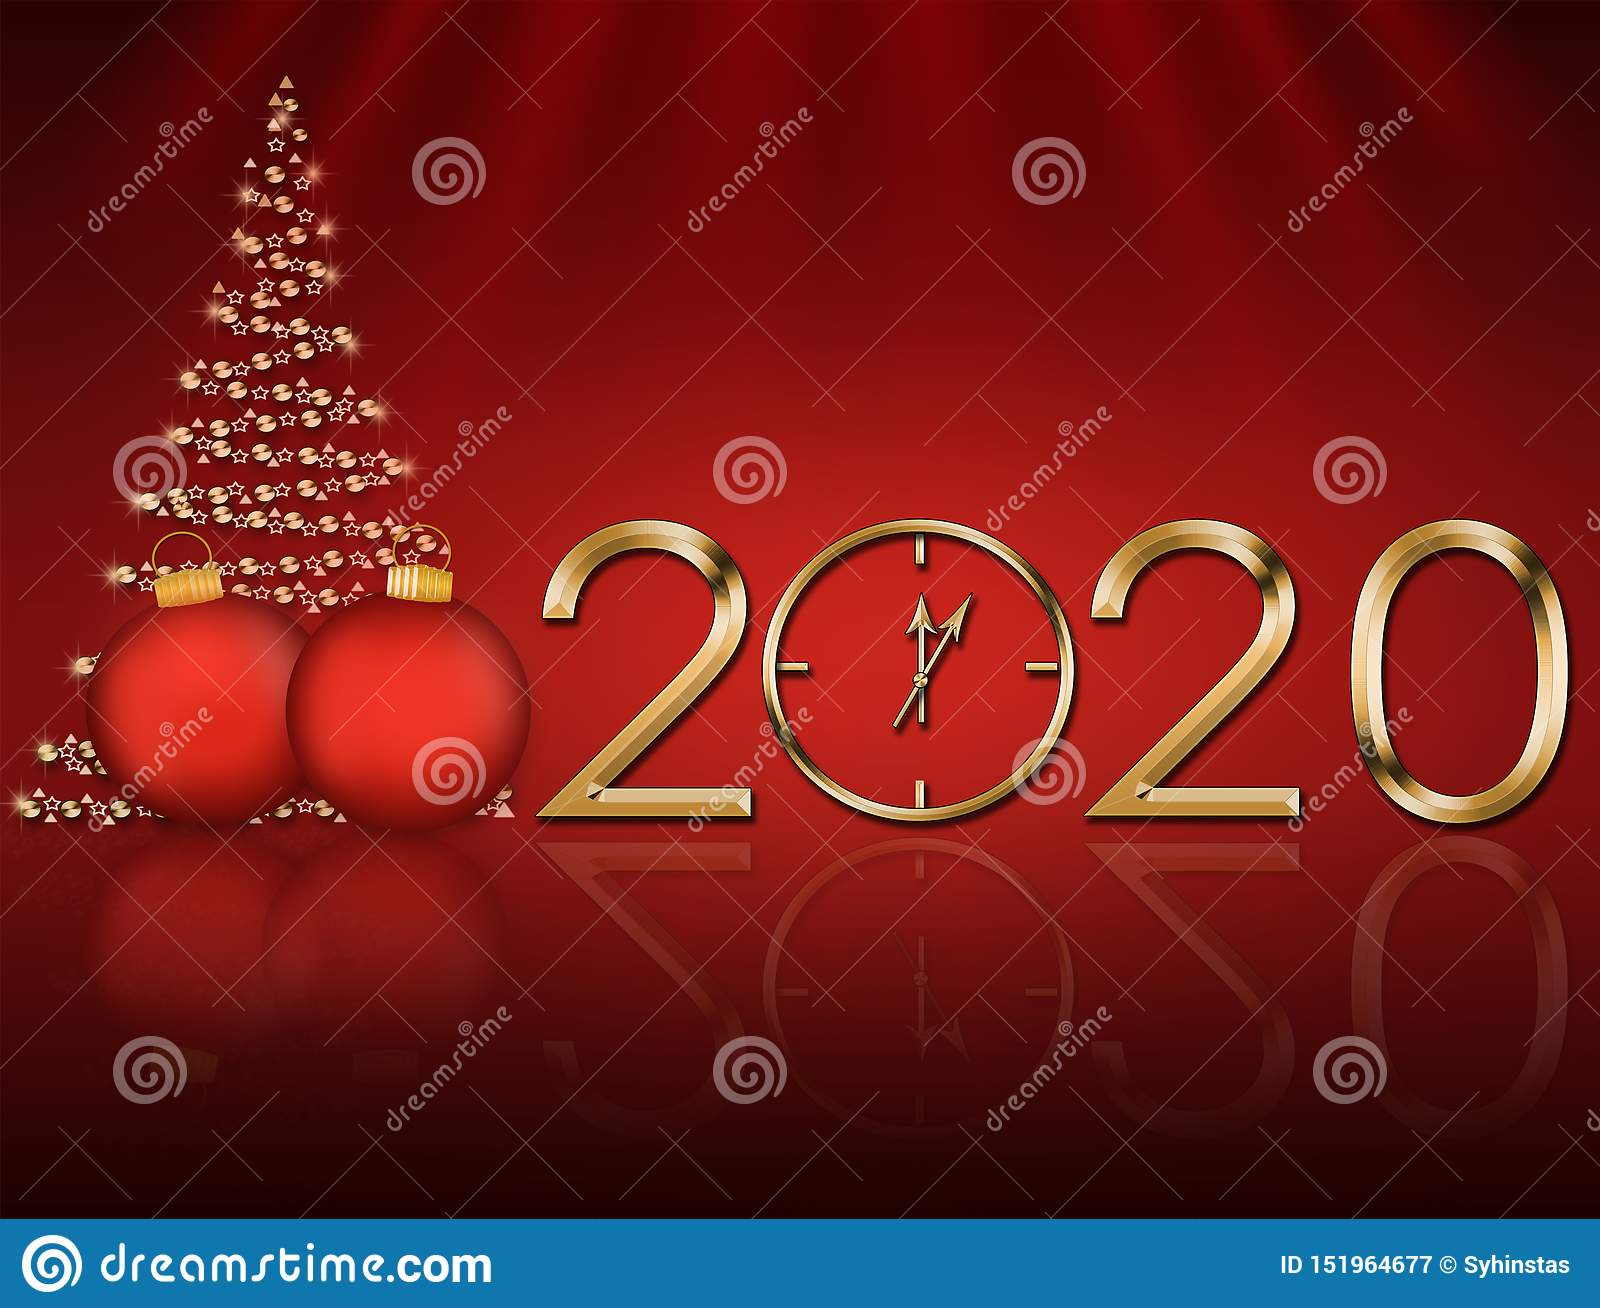 Christmas 2020.Christmas Card 2020 With A Christmas Tree Stock Illustration